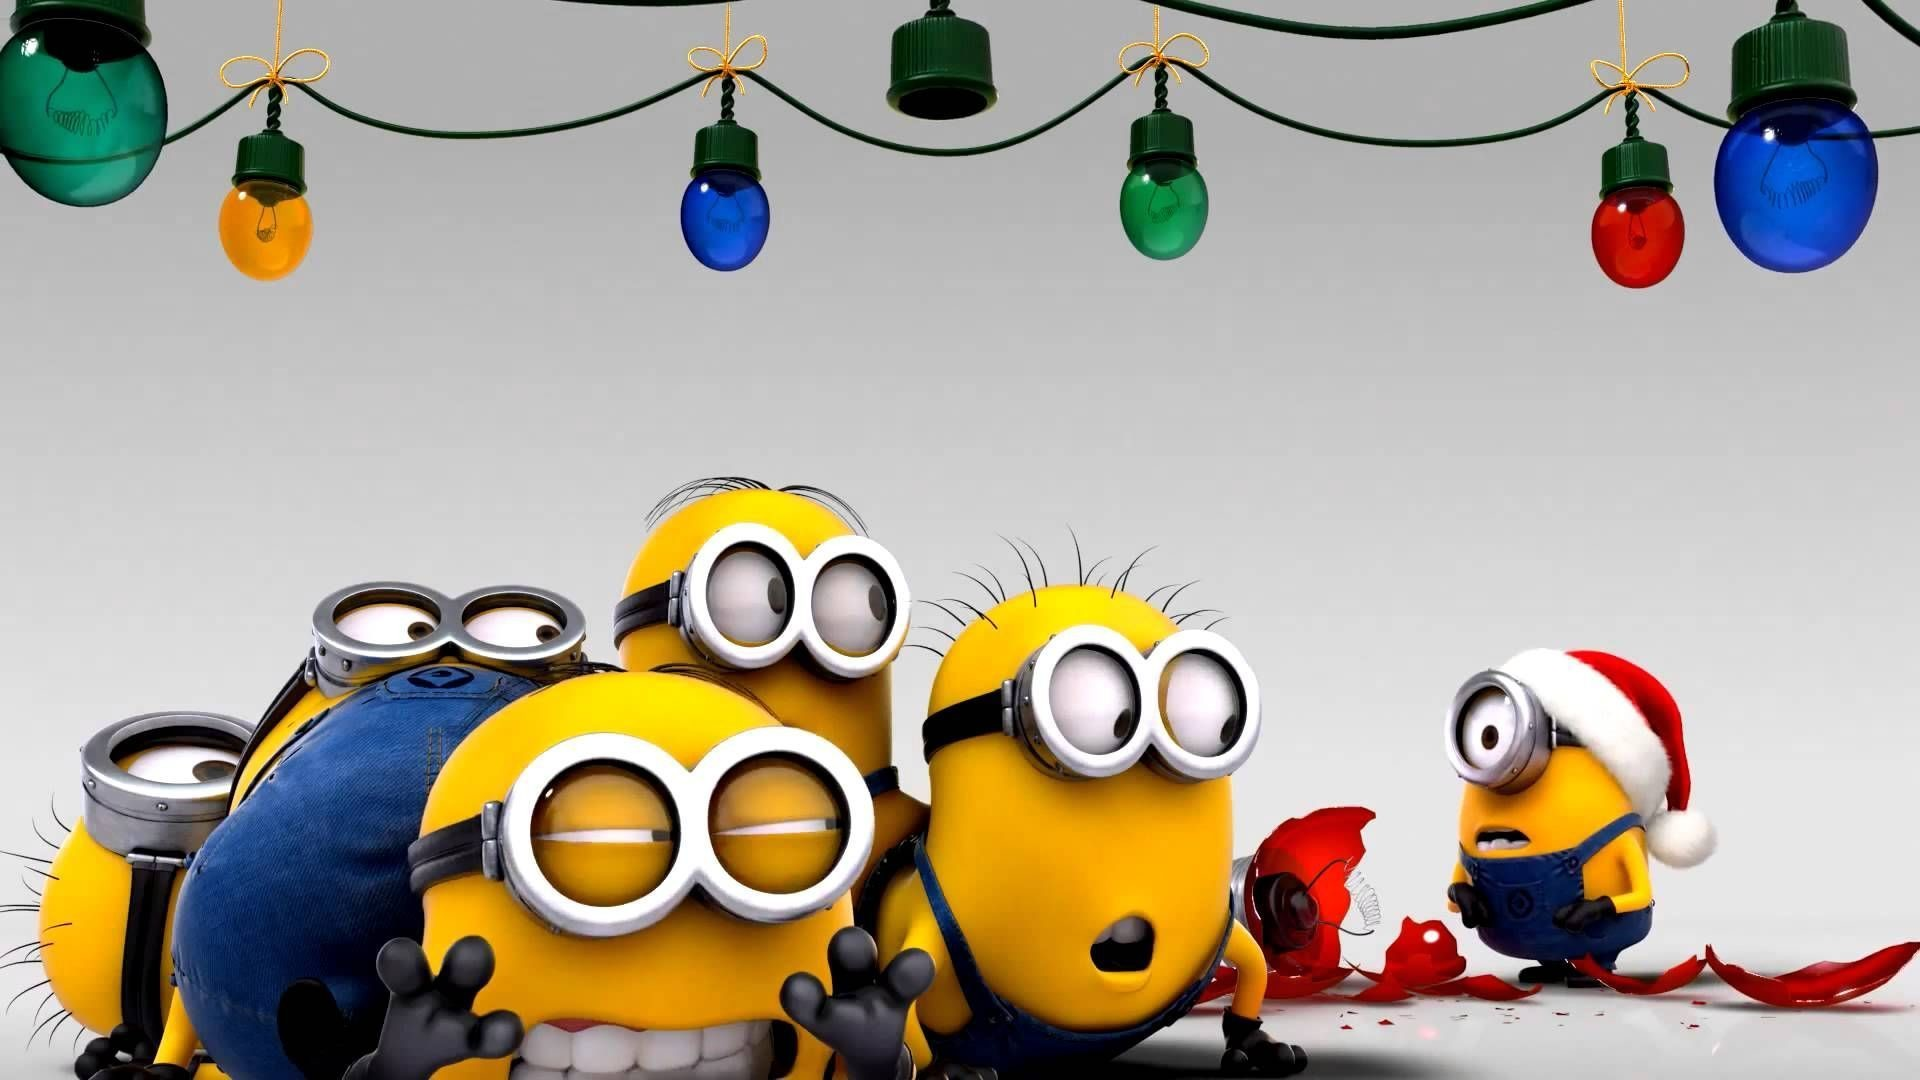 Minions Despicable Me Wallpapers Desktop Backgrounds HD Wallpapers